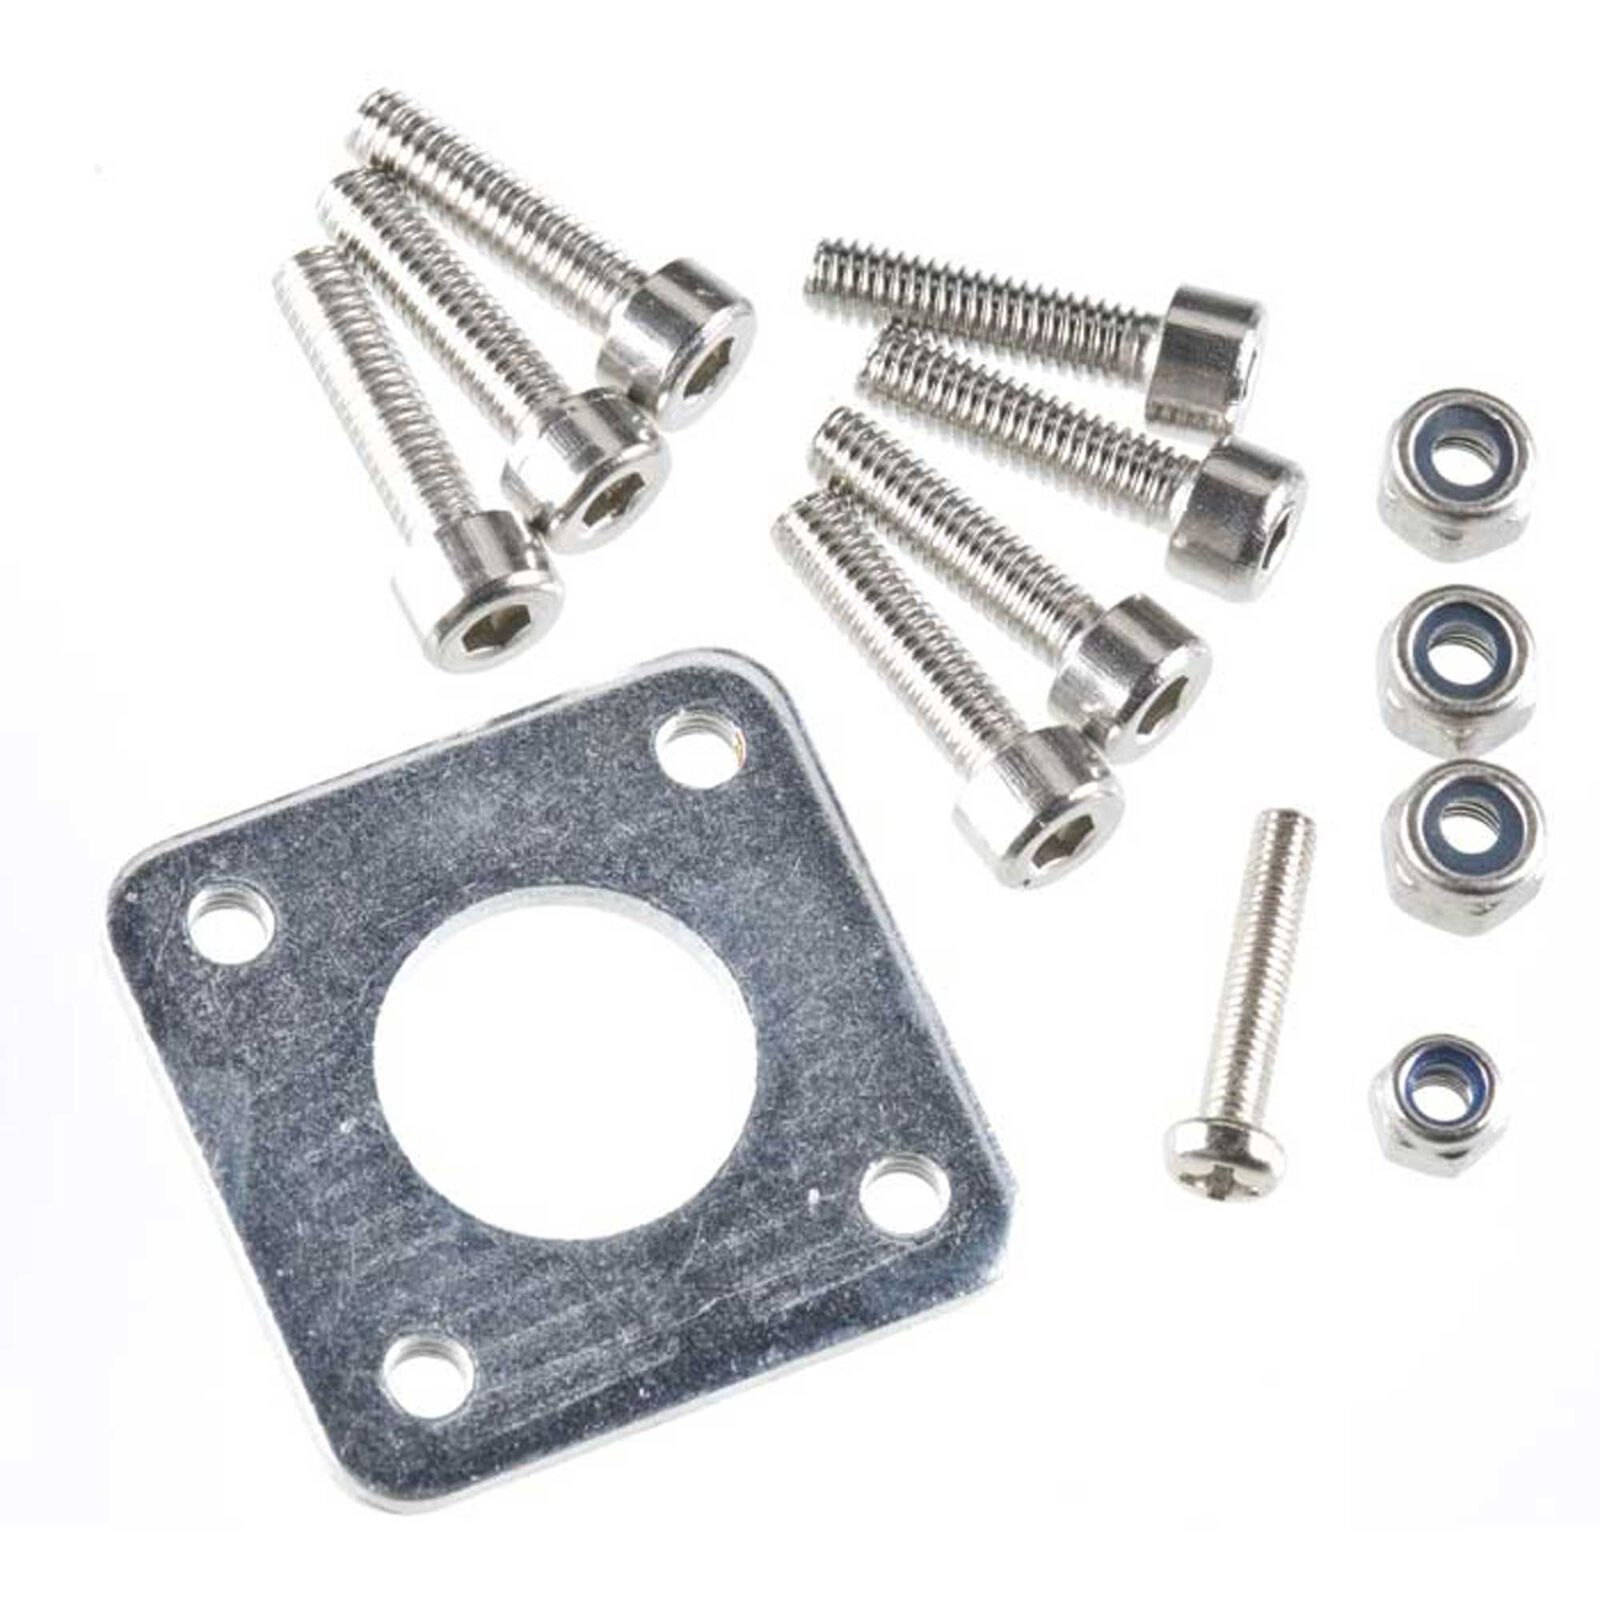 Rudder Mount Bolts and Nuts: Rio 51